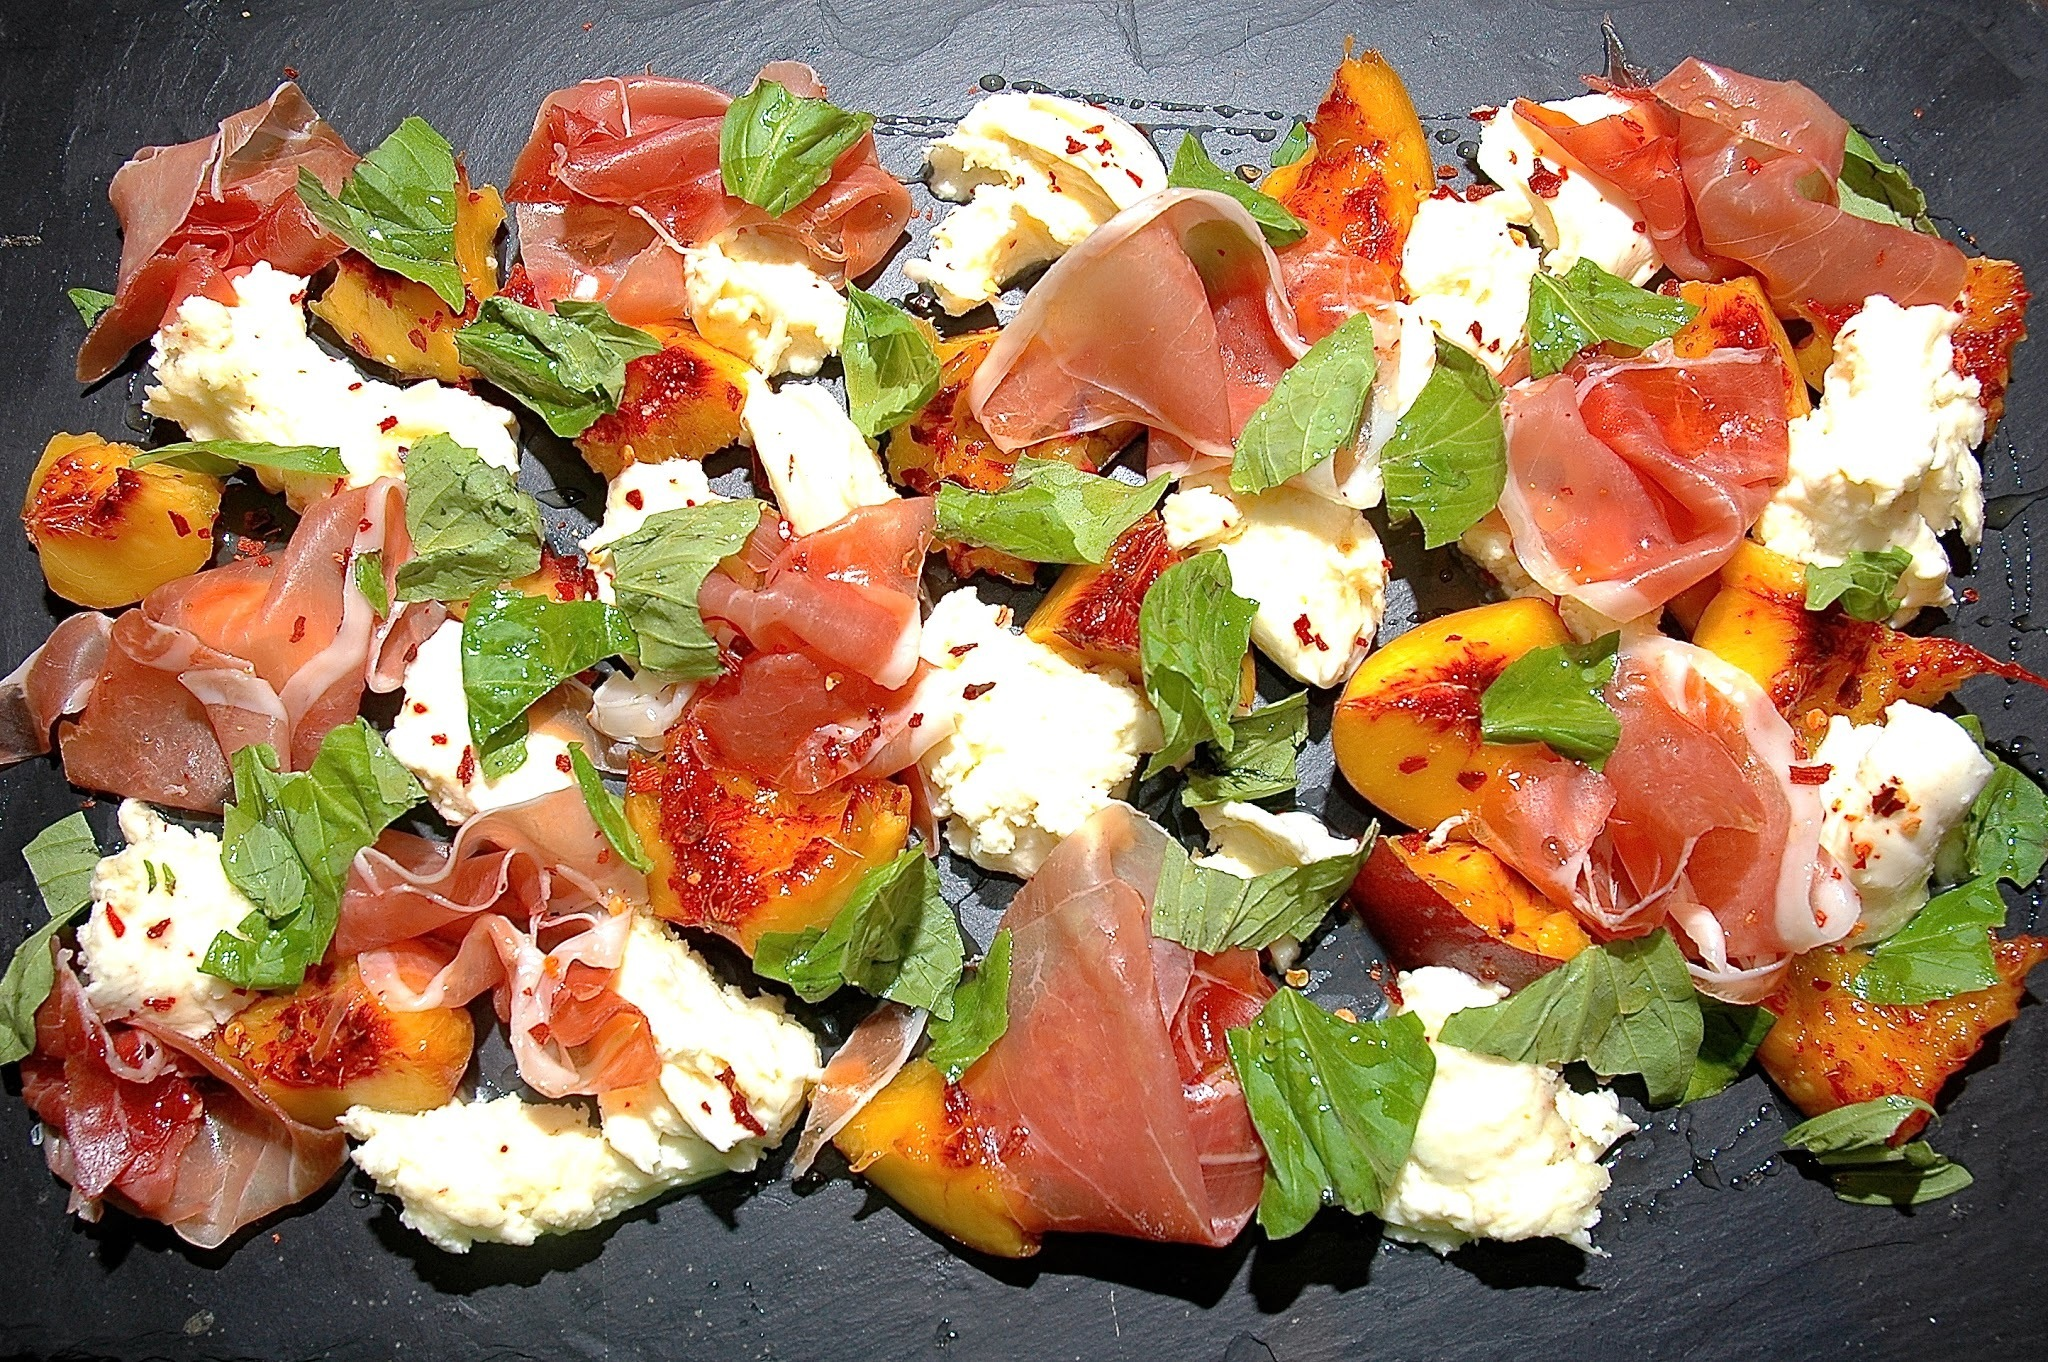 A Salad of Peach, Mozzarella, Parma Ham & Honey